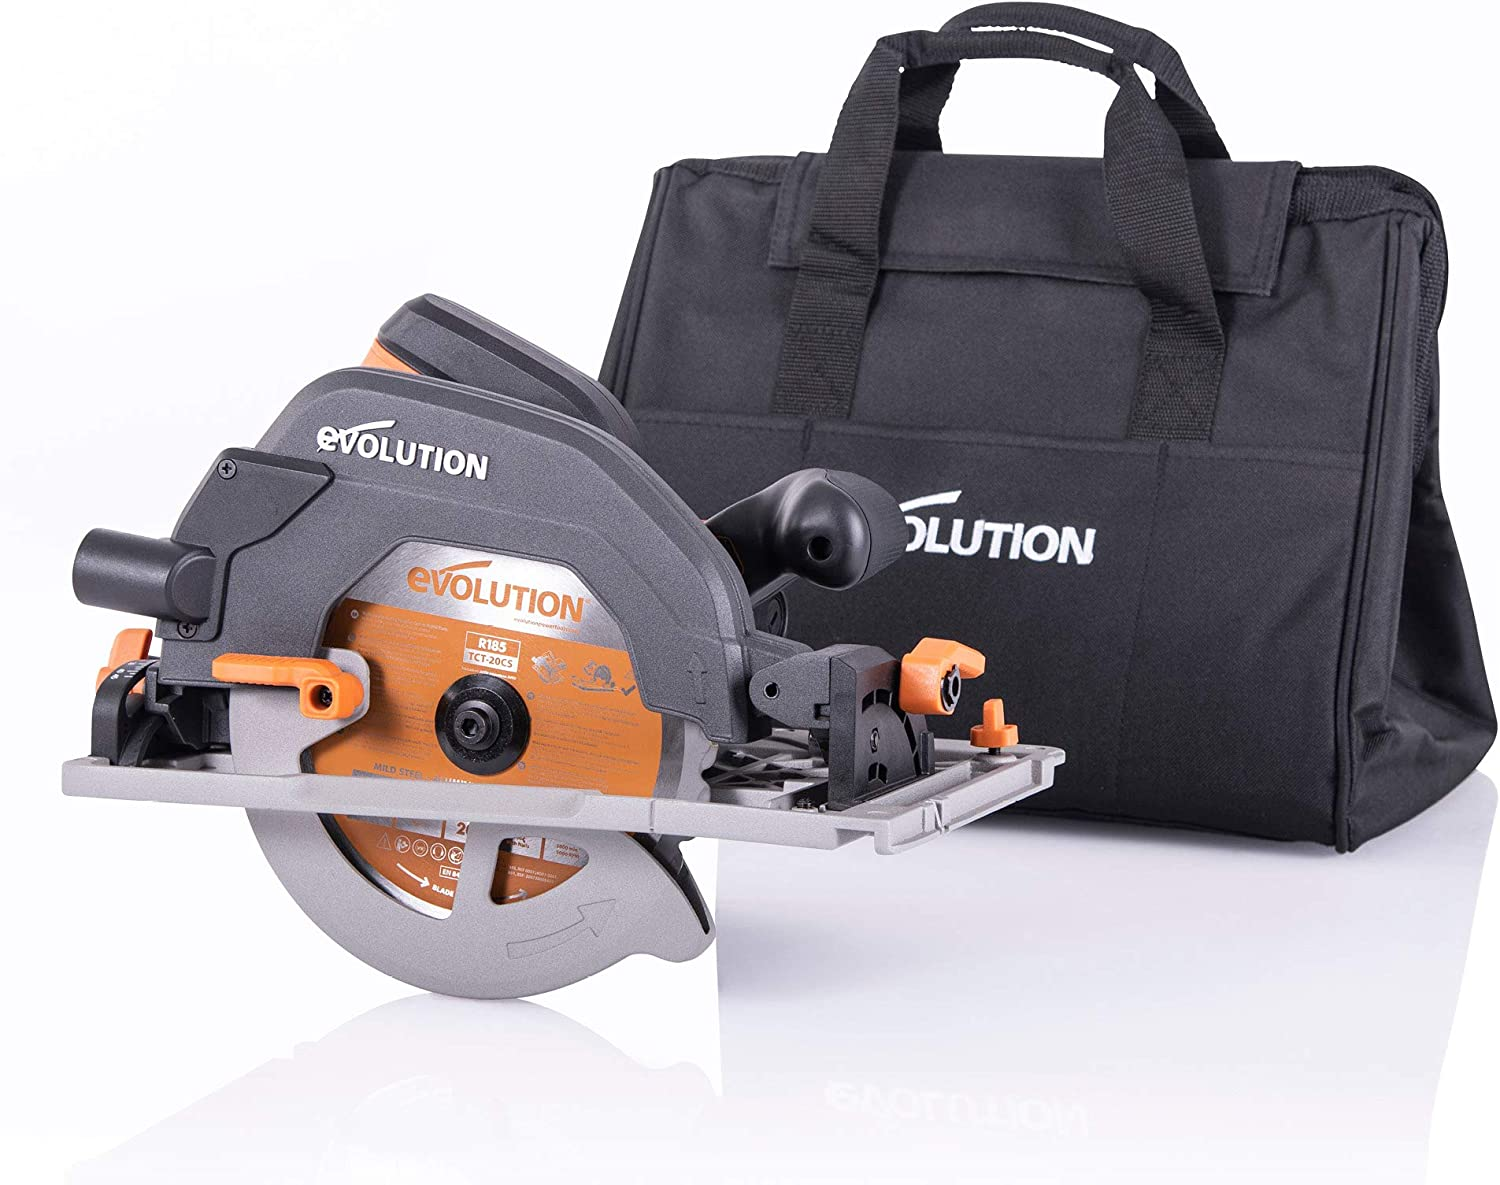 Evolution Power Tools - Sierra circular multimaterial R185CCSX+ con guía compatible (paquete plus con bolsa de transporte), 185 mm, 230 V